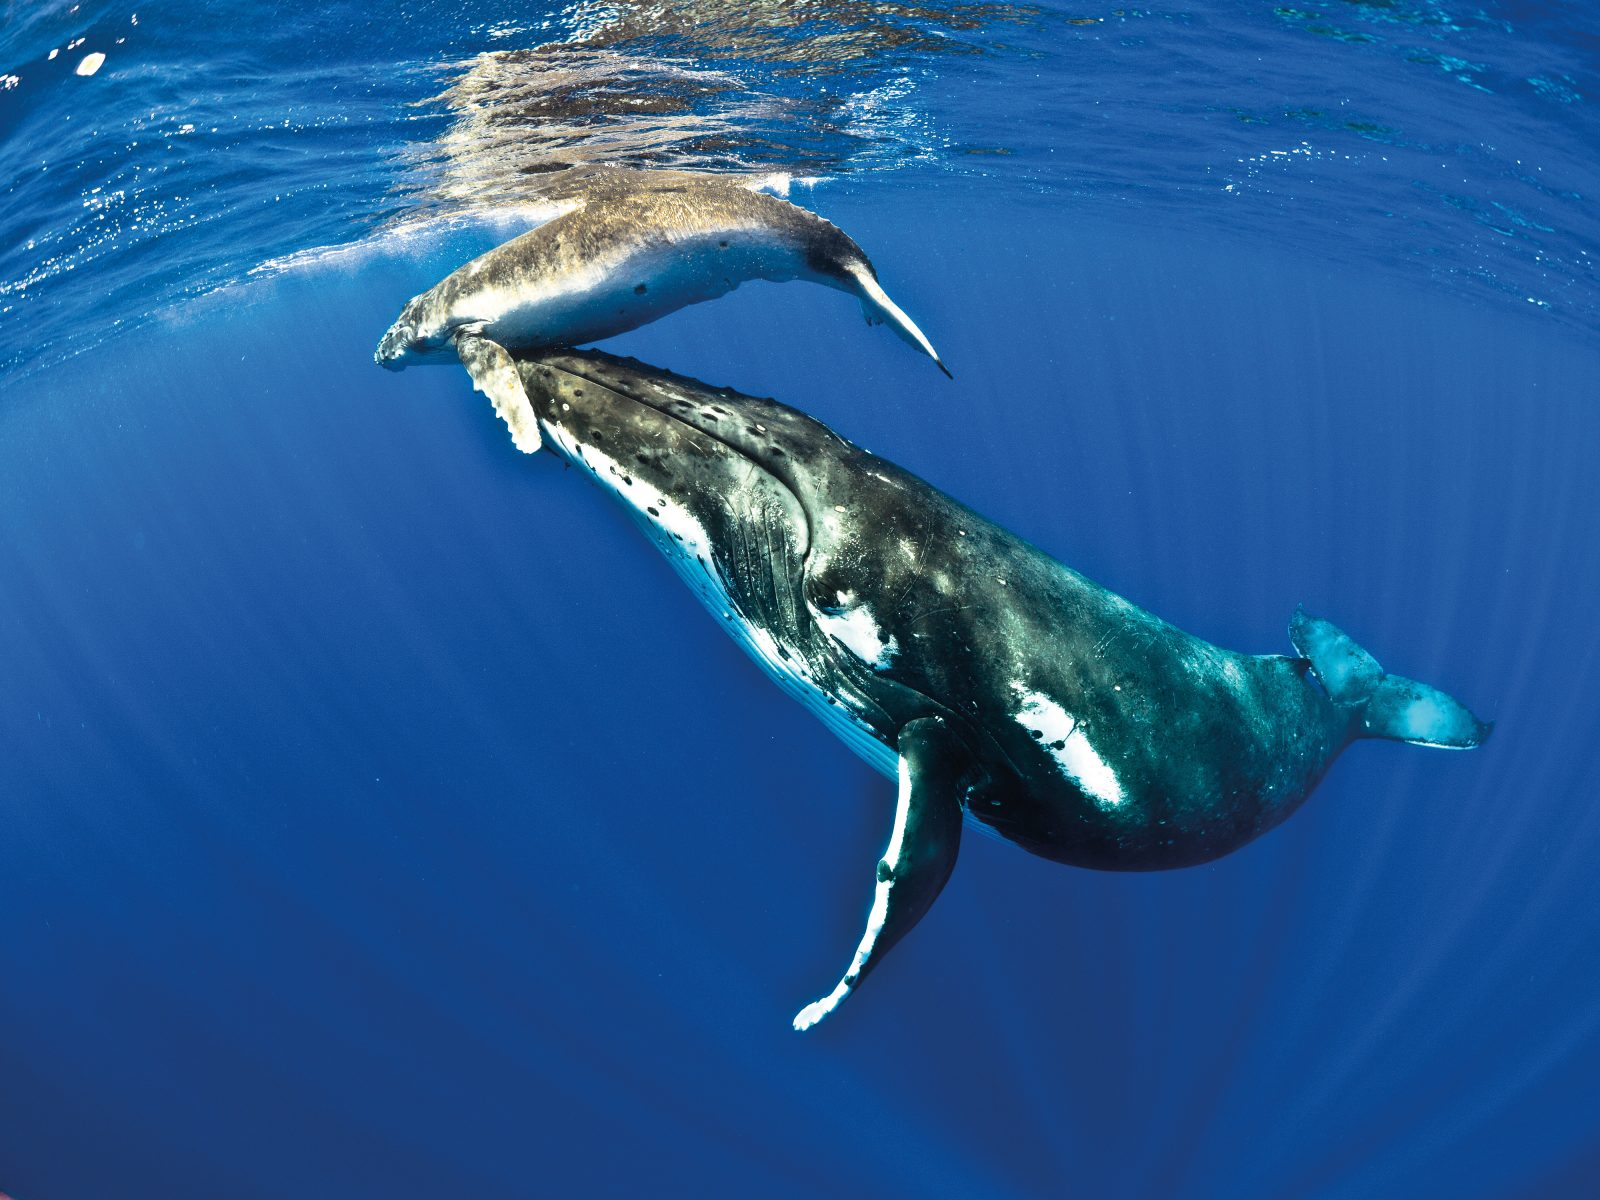 "Every winter, humpback whales leave their summer feeding grounds in polar waters and migrate thousands of miles to the tropics for mating and calving. The population of humpbacks in the Oceania region has yet to recover from illegal whaling that continued despite the 1986 moratorium, and while the species is listed now as ""Least Concern"", the status of this population is unknown. Climate change, pollution and ship collisions continue to keep humpbacks in the South Pacific under pressure. Every calf matters. This humpback mother in Niue stays close to its calf during its first days of life, lifting it to the surface to breathe."